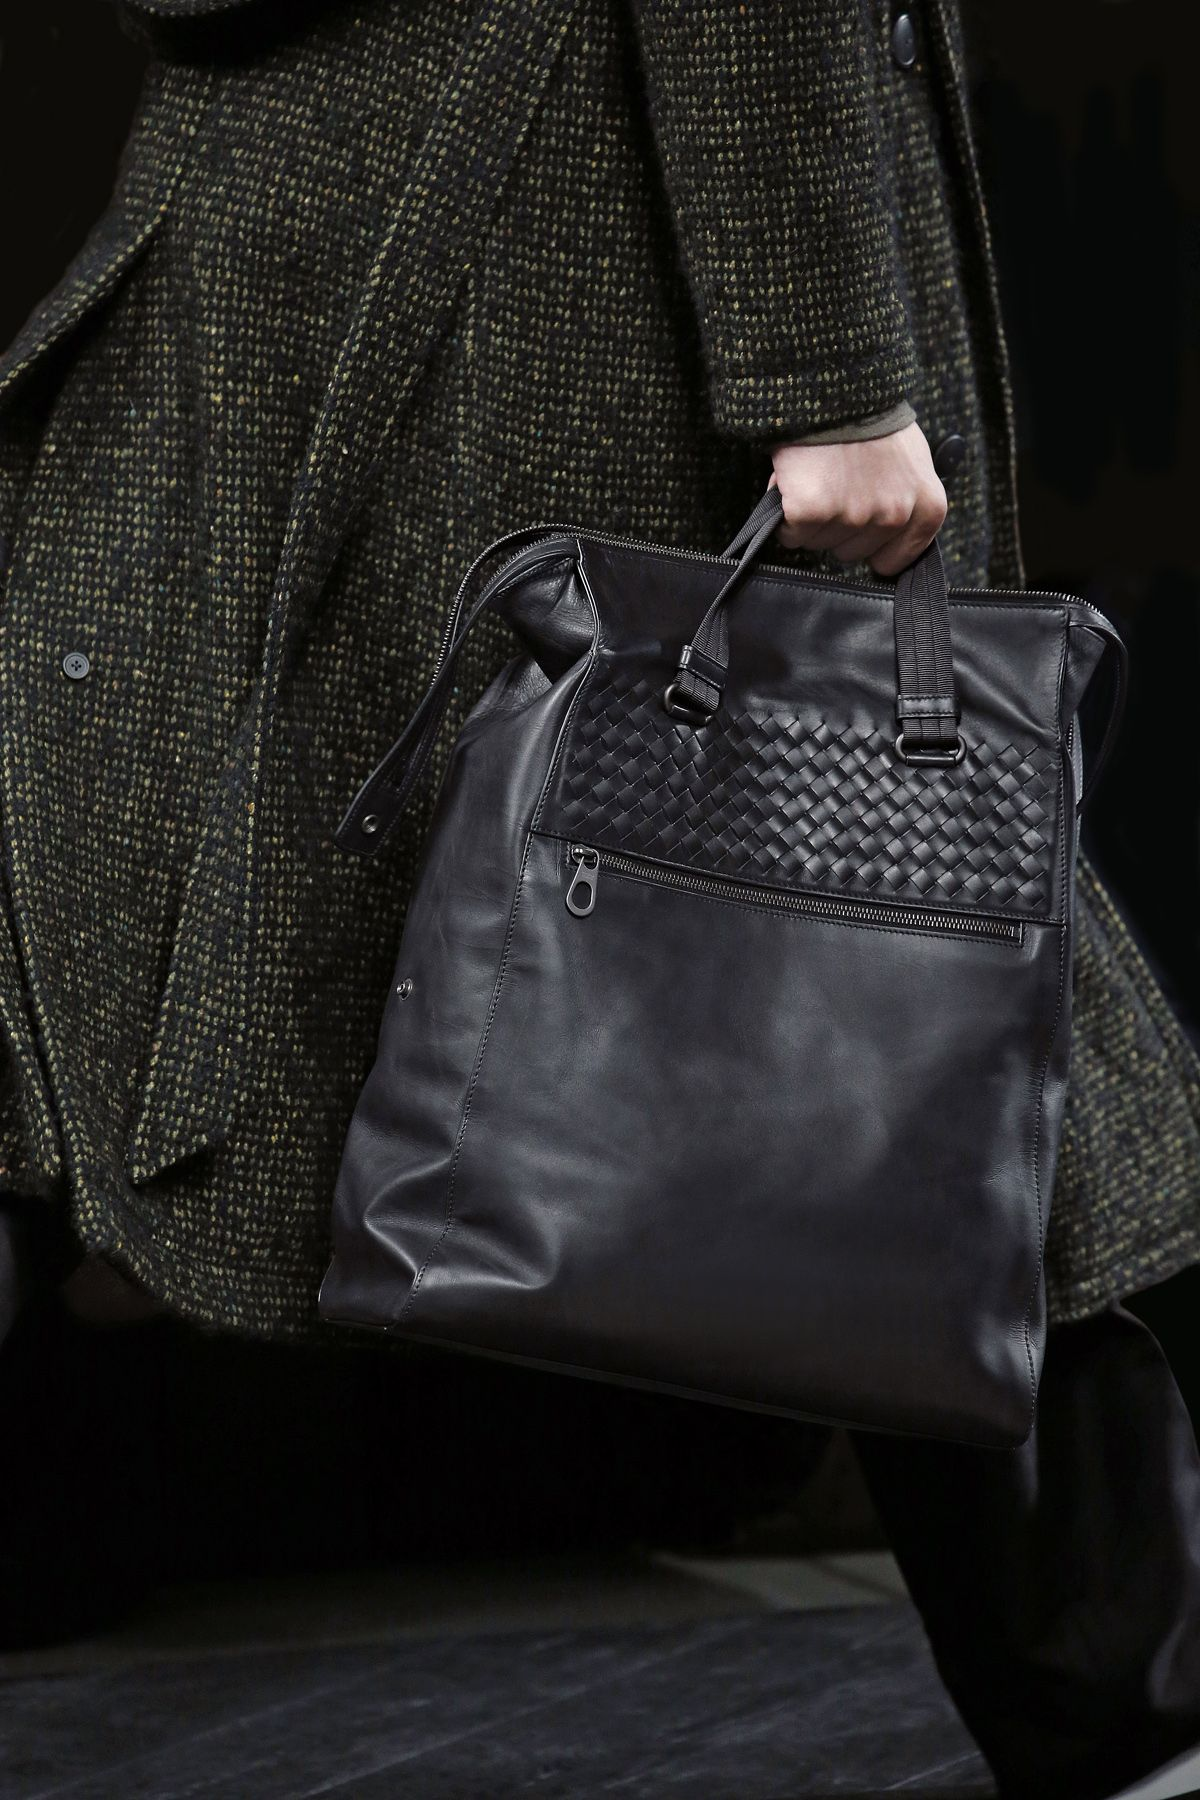 d6c66a4a0c5bf #BottegaVeneta Men's Fall-Winter 2016/2017 Details #mfw Leather Bag, Leather